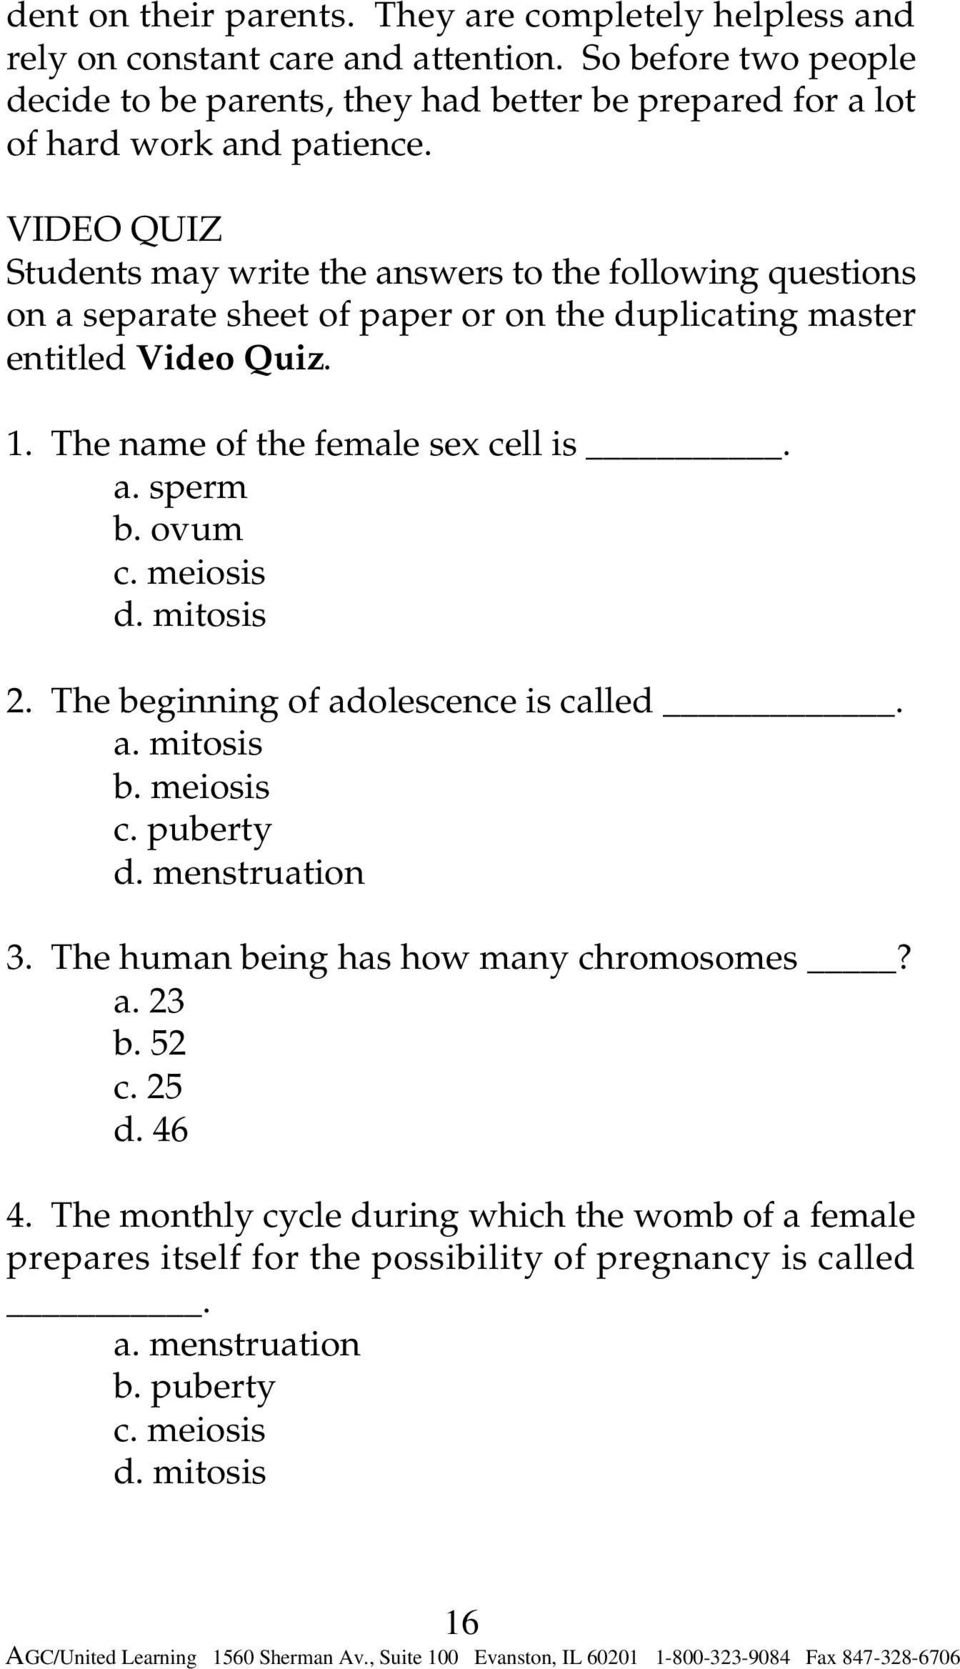 VIDEO QUIZ Students may write the answers to the following questions on a separate sheet of paper or on the duplicating master entitled Video Quiz. 1. The name of the female sex cell is. a. sperm b.